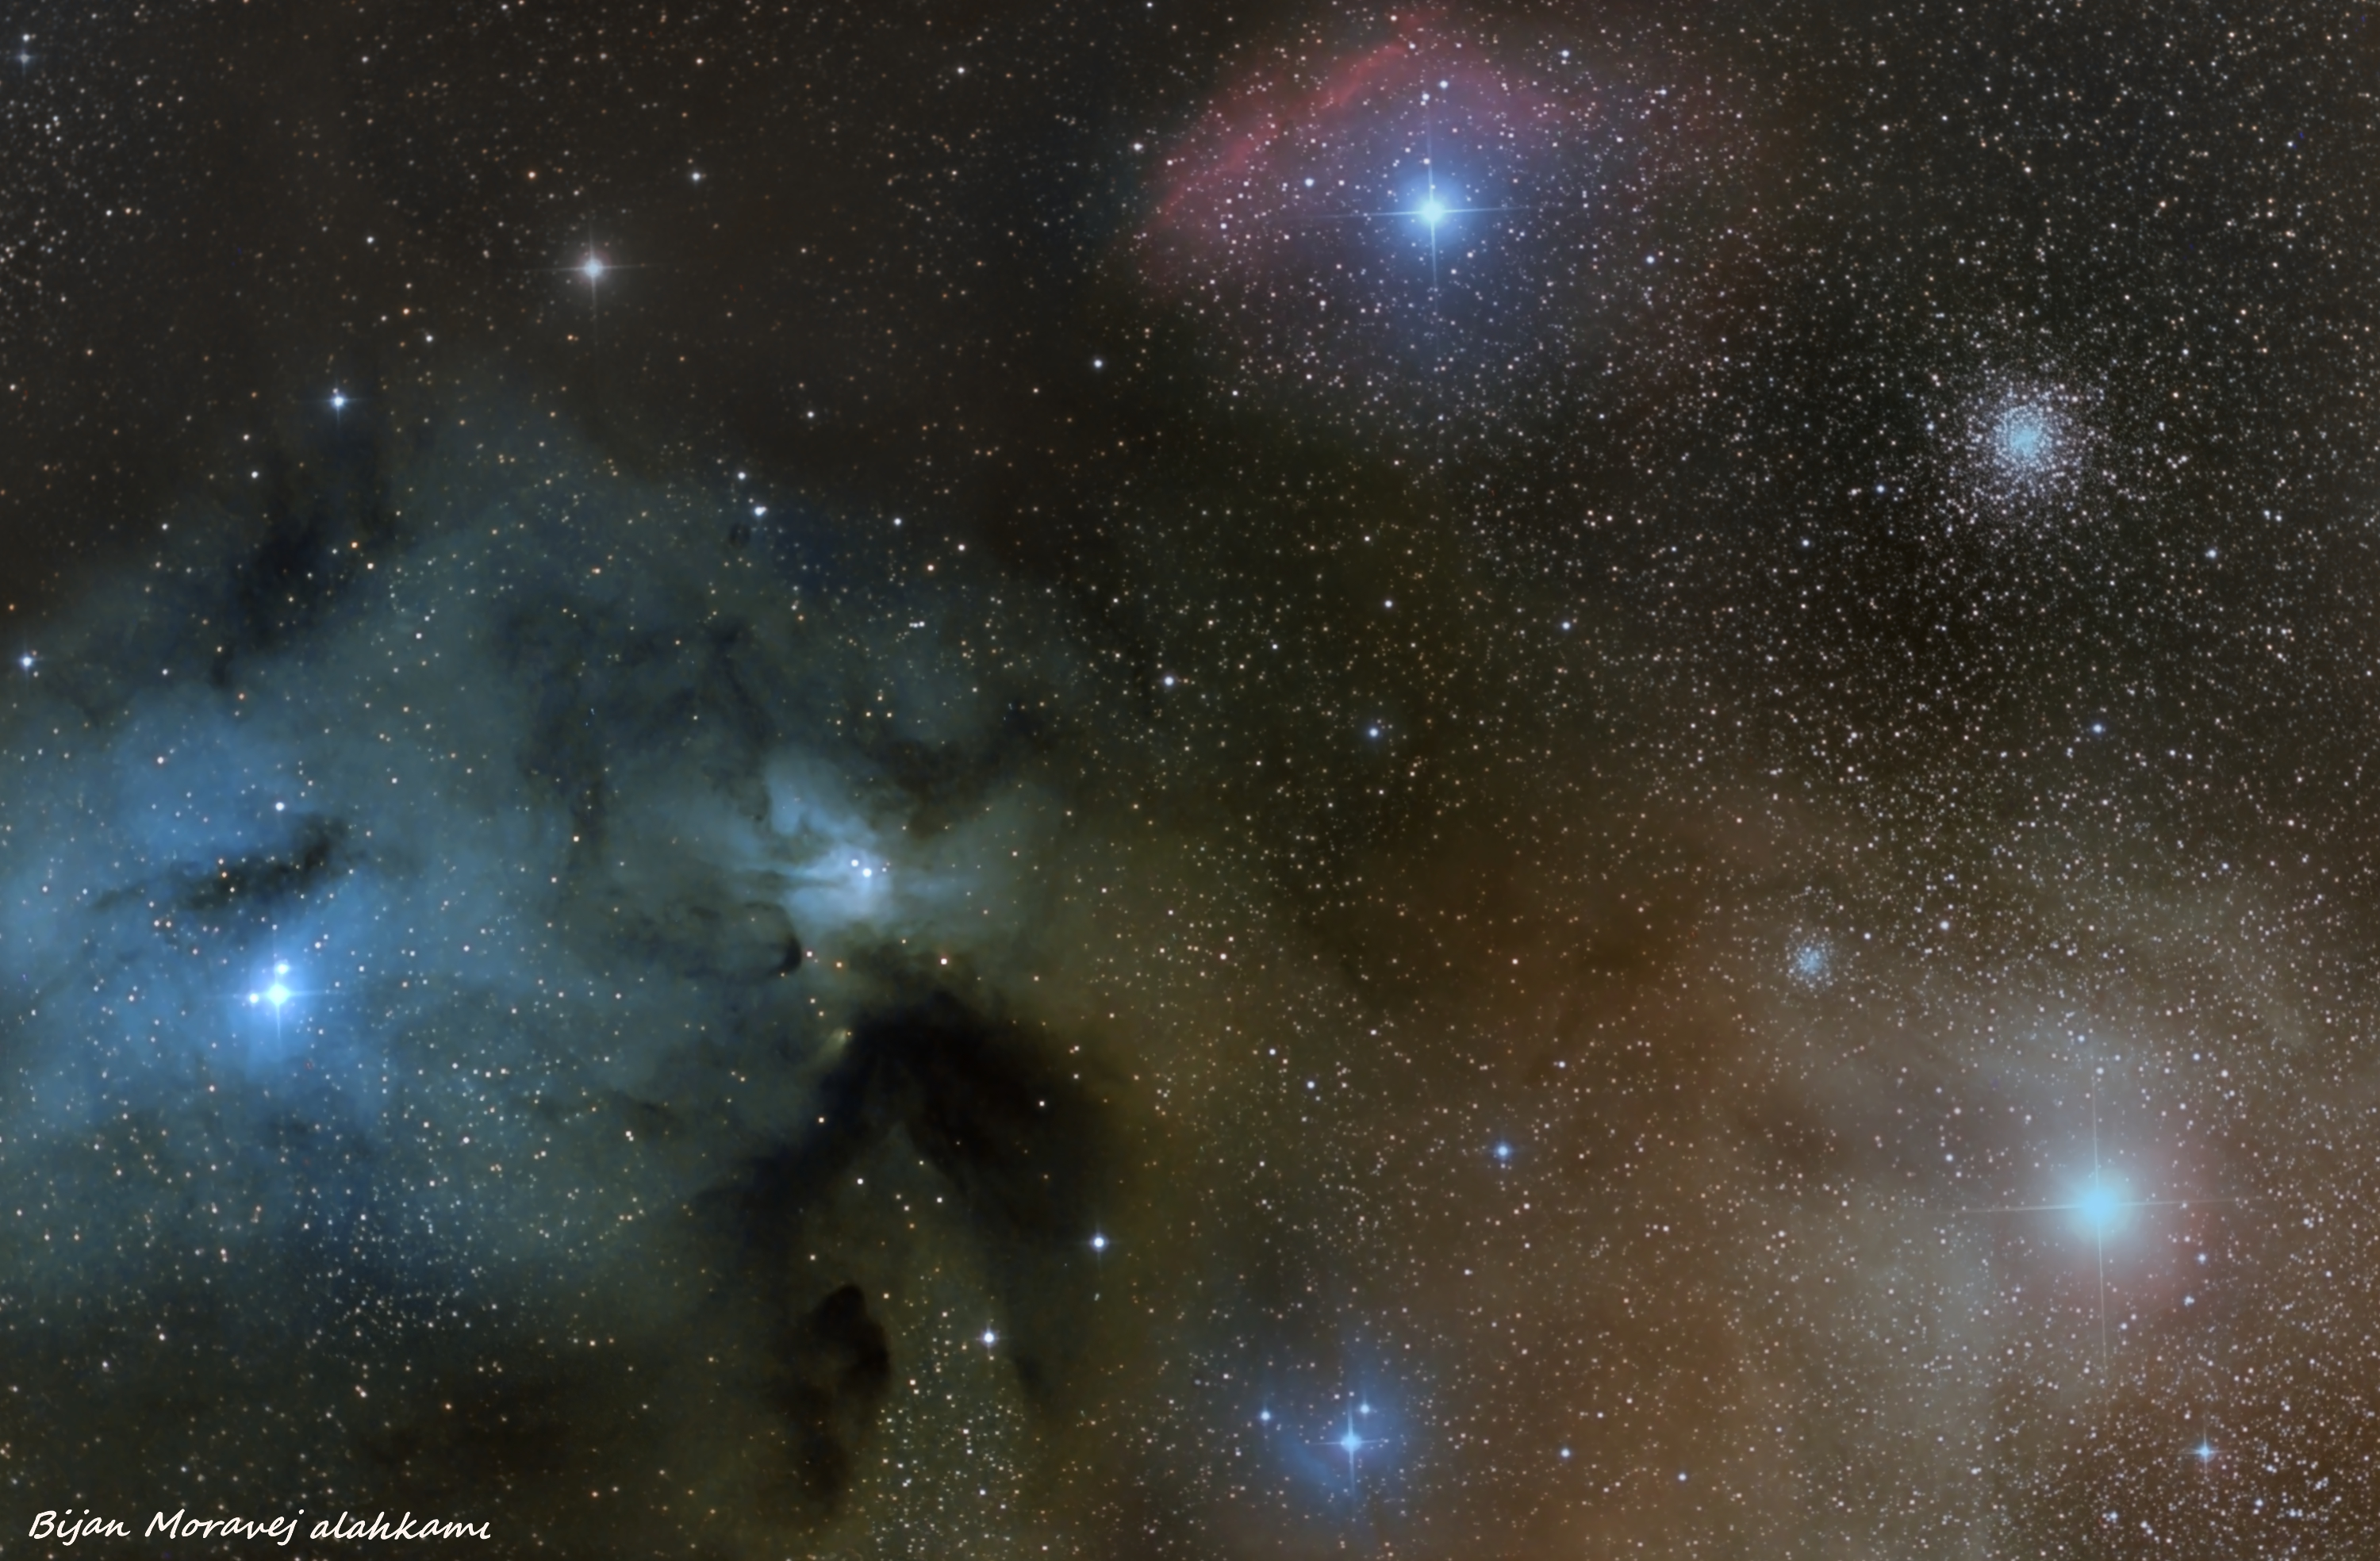 supergiant Antares and Rho ophiuchi